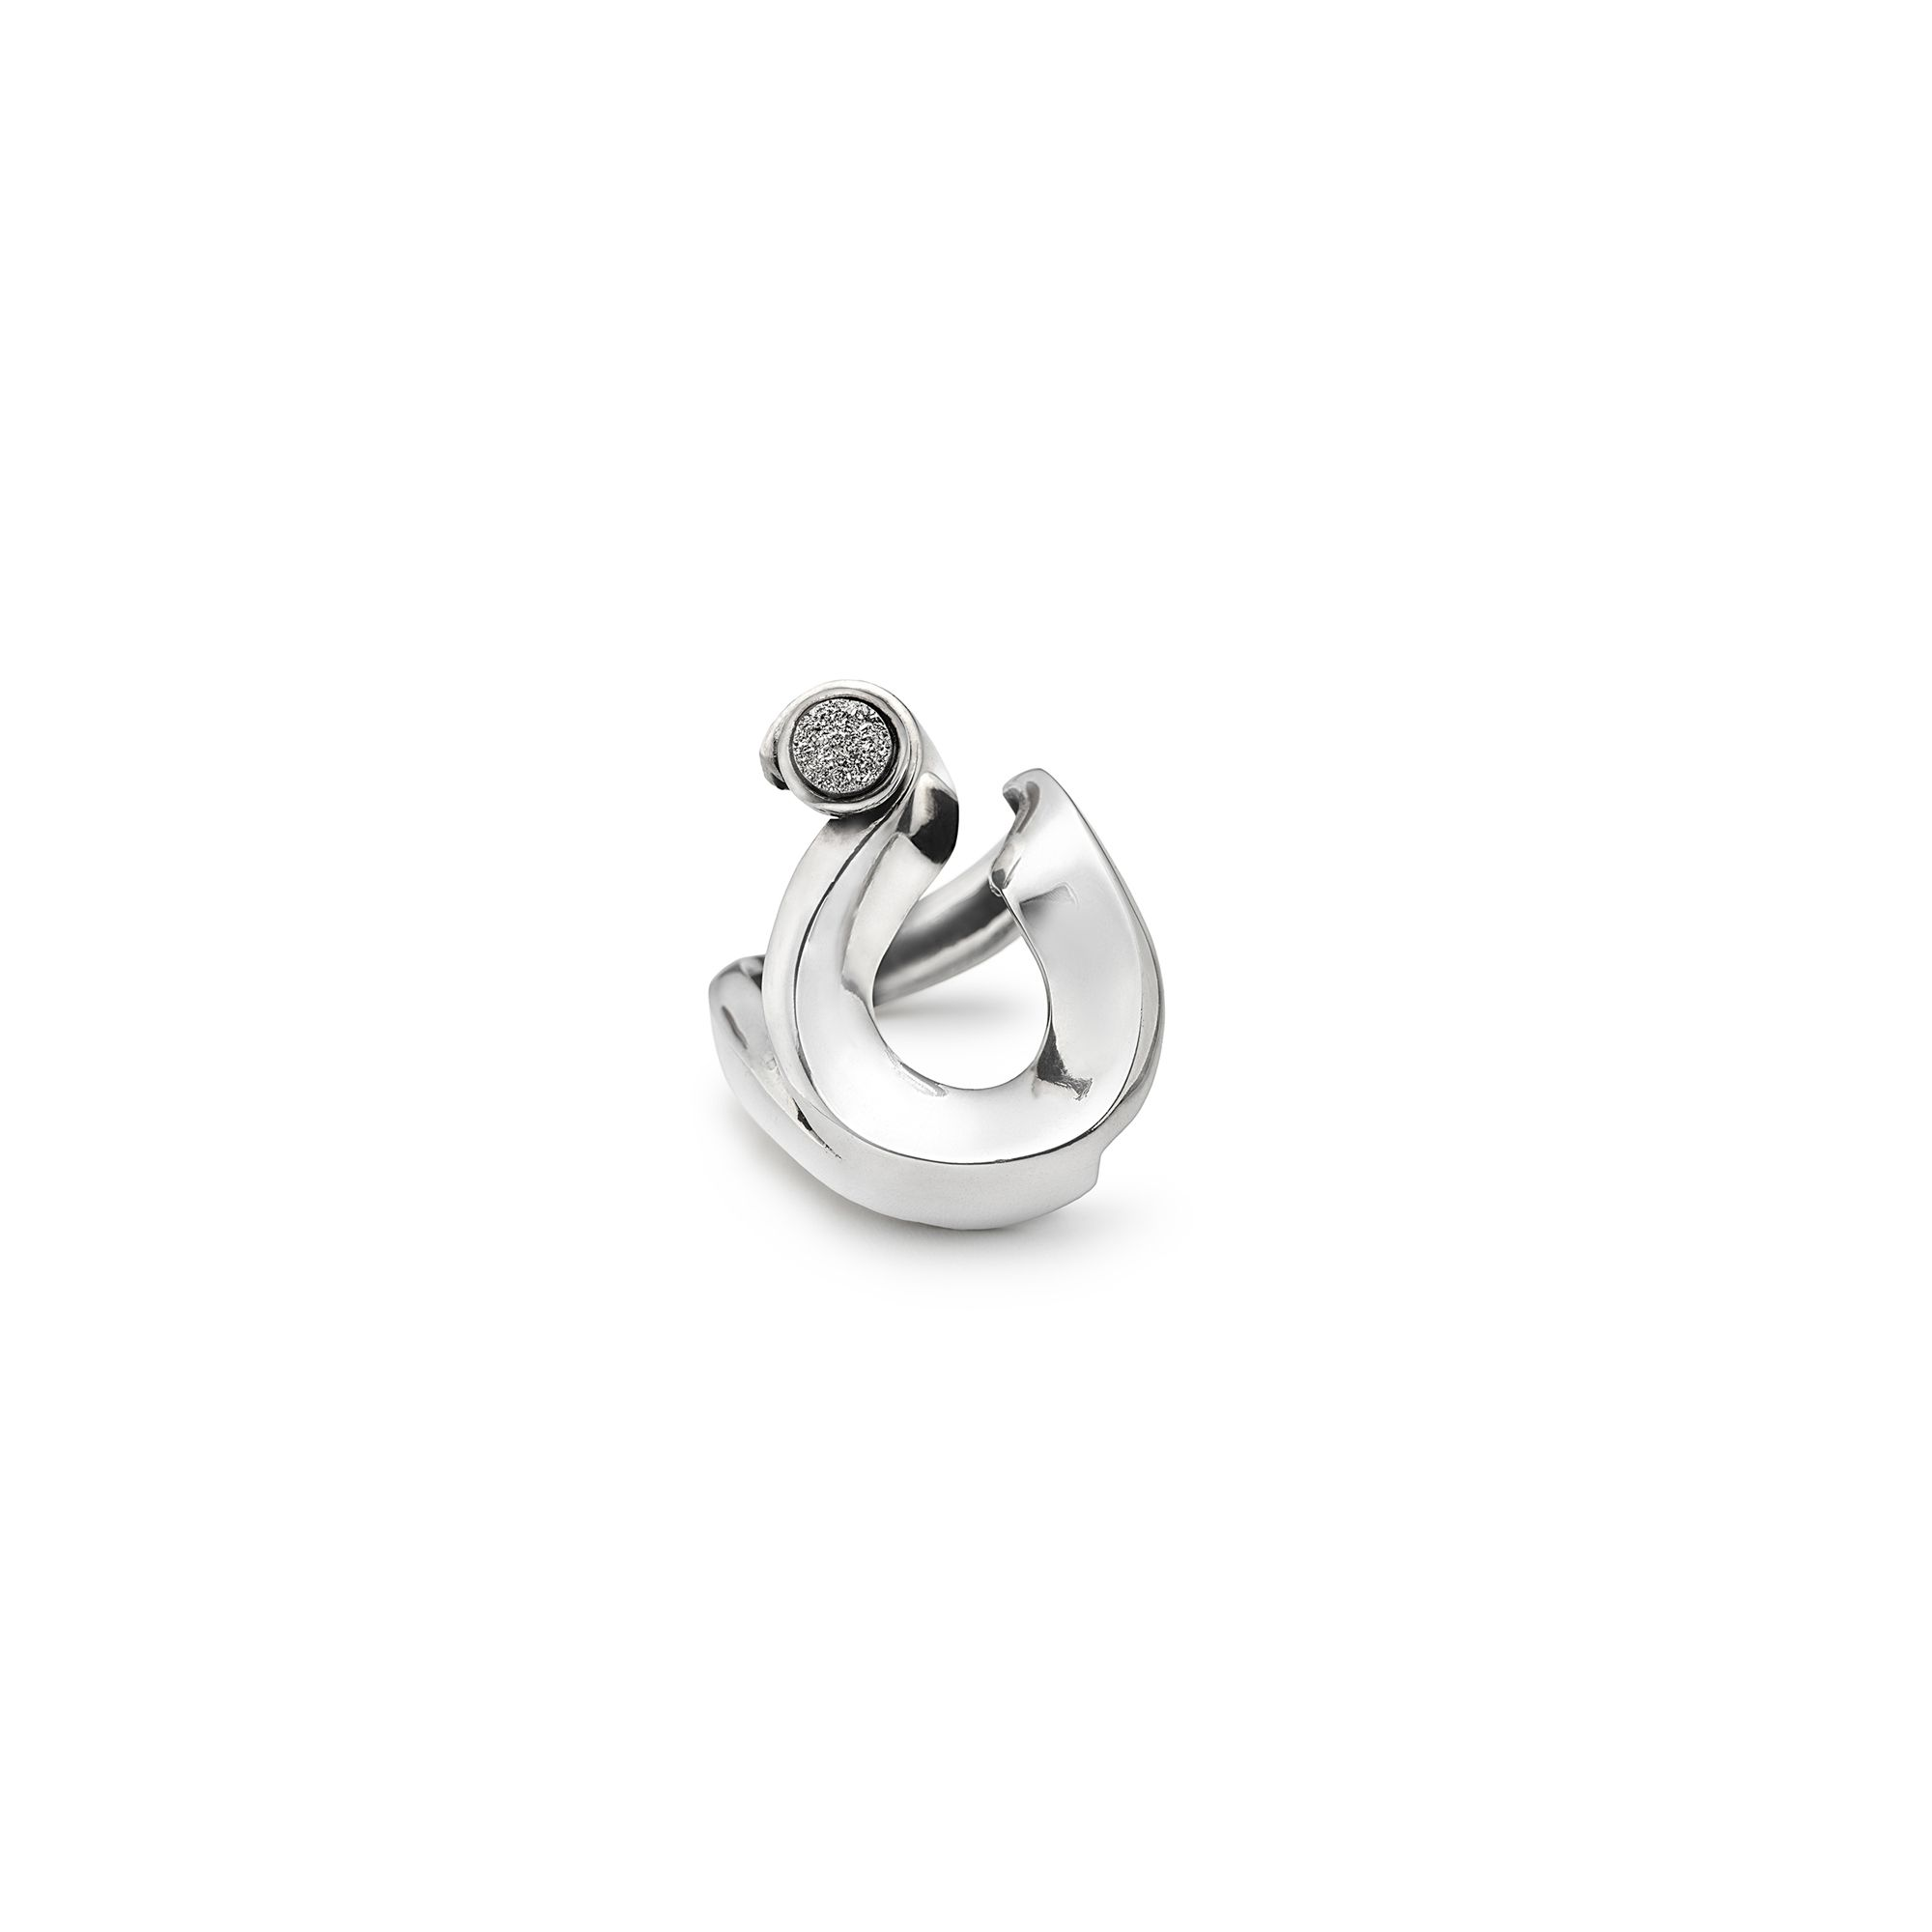 'Nastri' ring Ring in silver with drusa